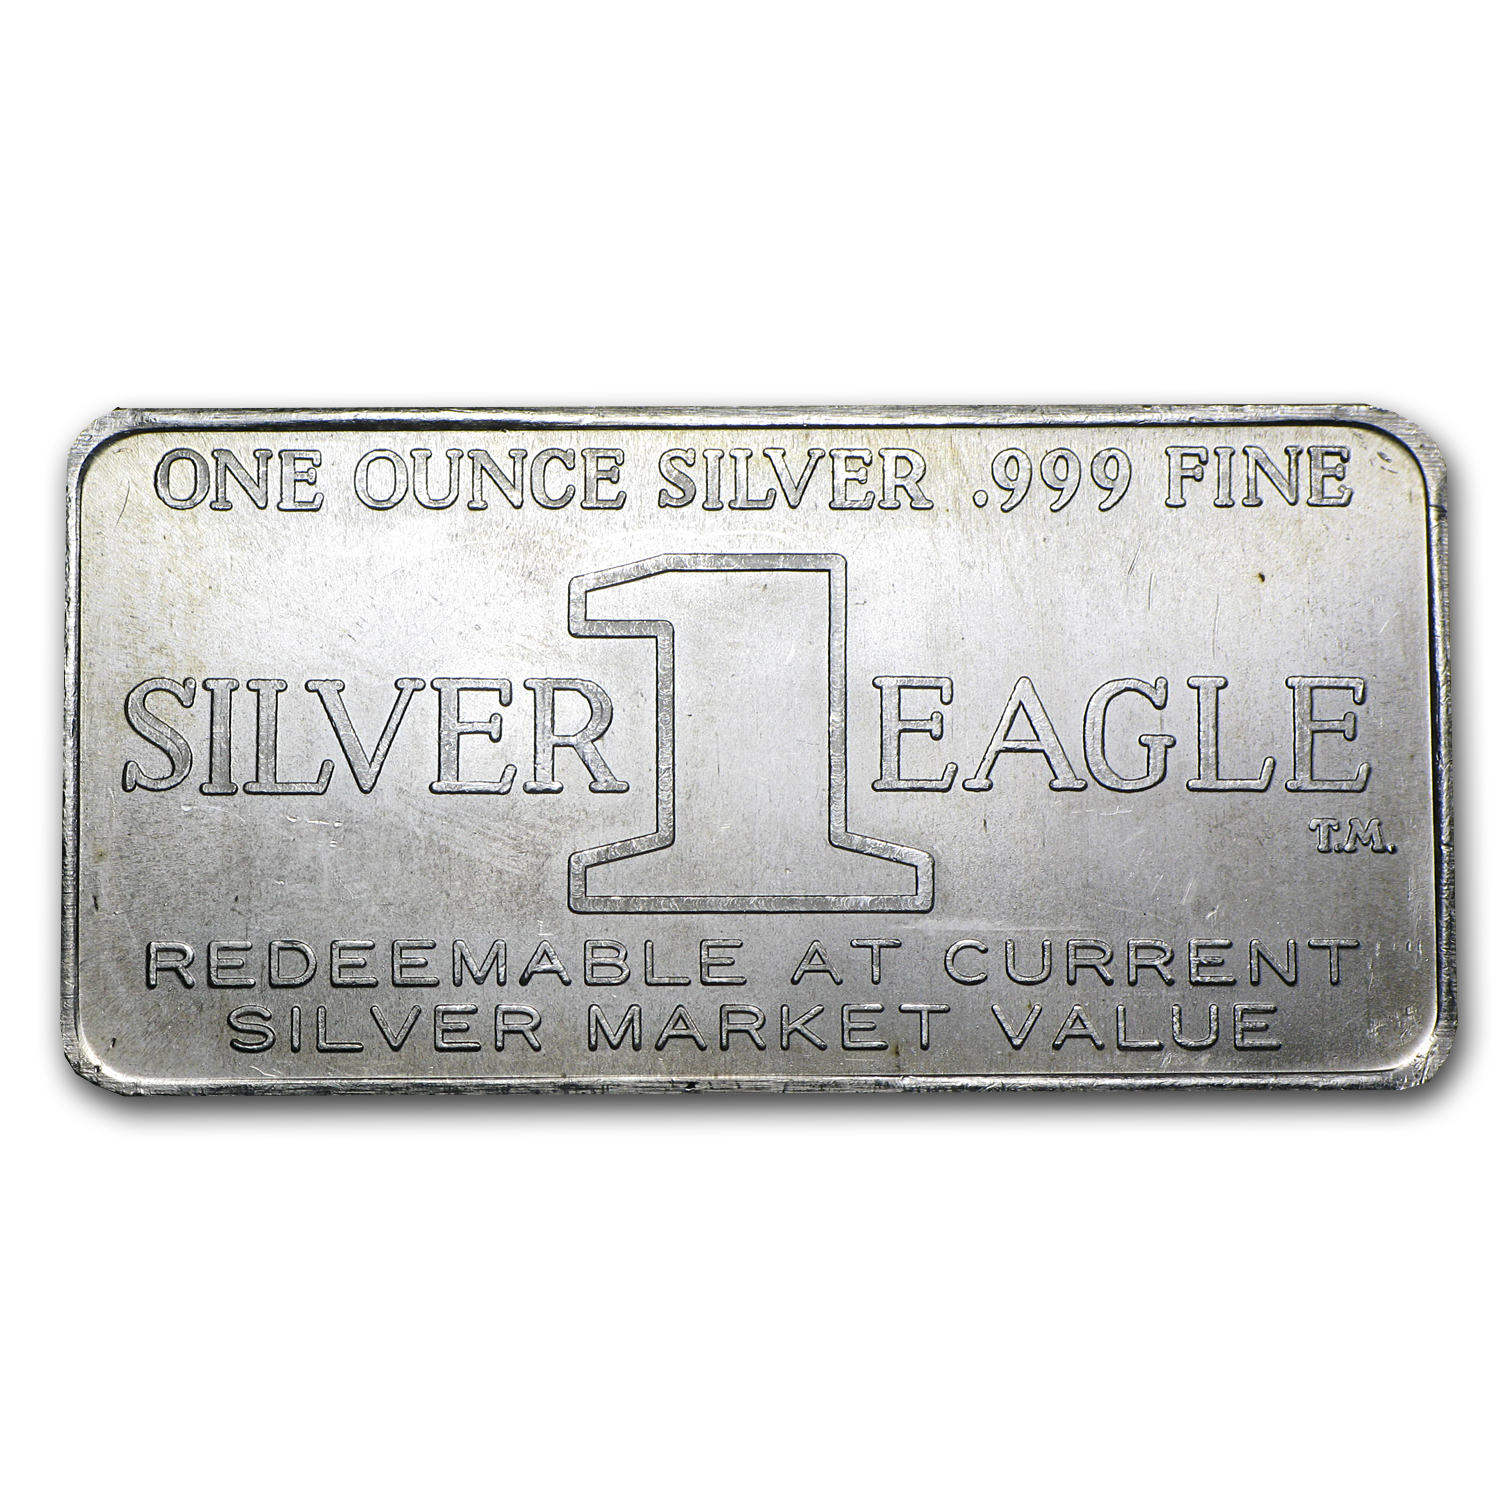 1 oz Silver Bars - Silver Eagles Nest